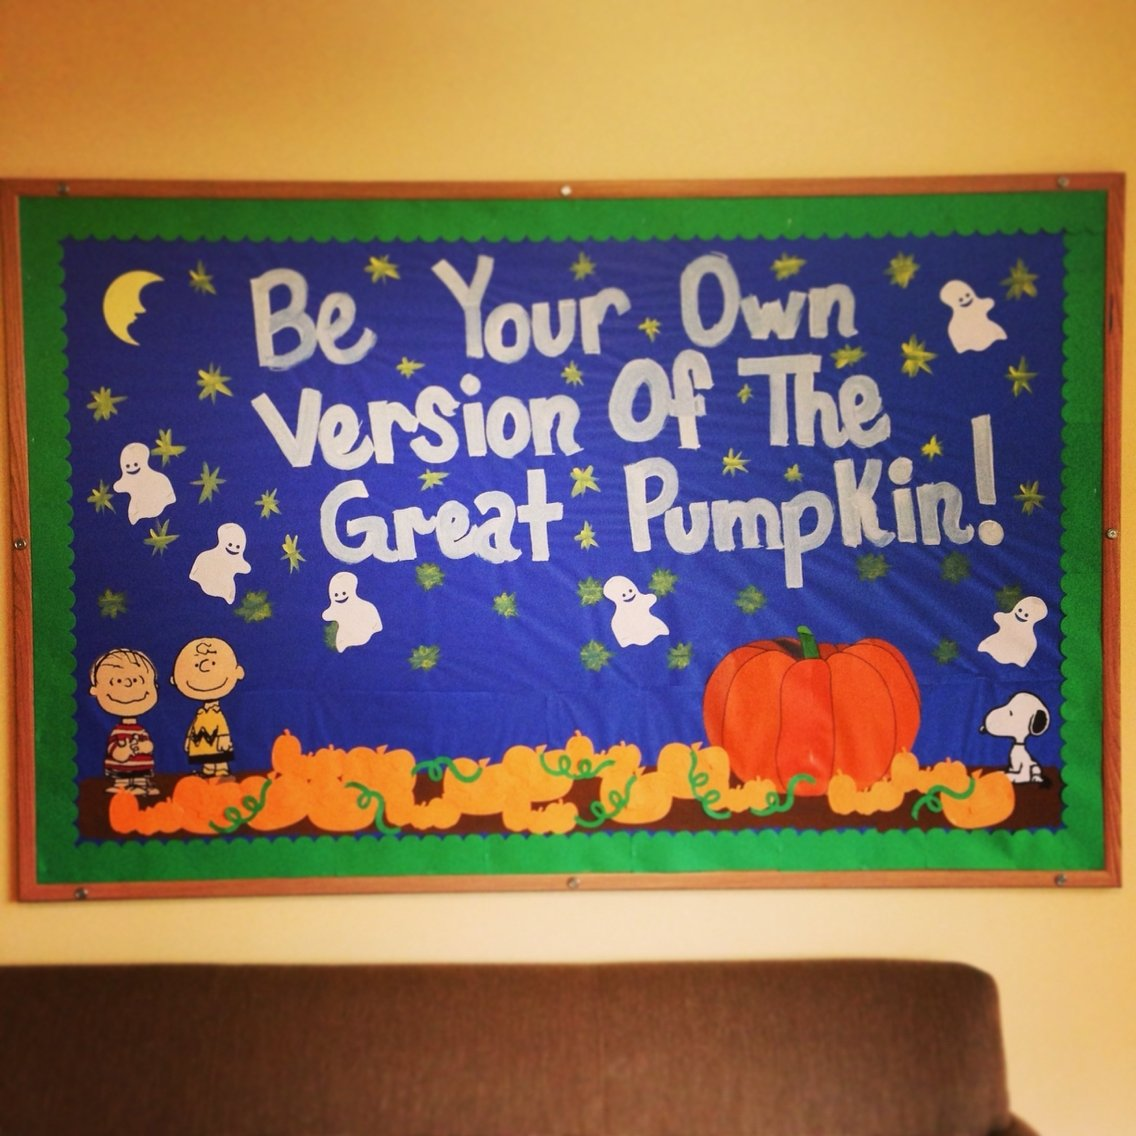 10 Pretty Halloween School Bulletin Board Ideas halloween bulletin boardcharlie brown and the great pumpkin ra 2020